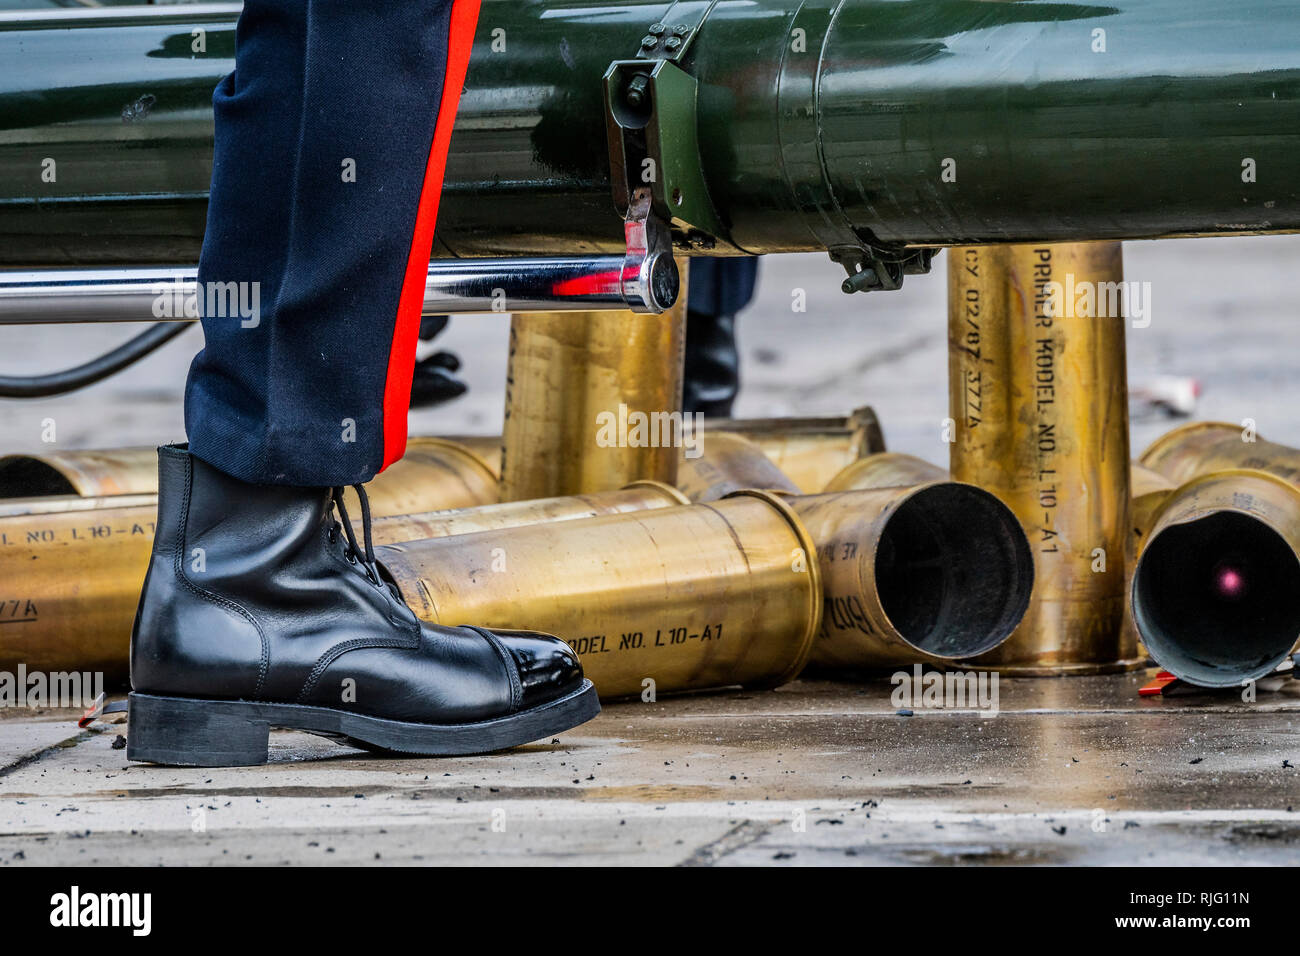 London, UK. 6th Feb 2019. Brass catridge cases after firing - The Honourable Artillery Company (HAC), the City of London's Reserve Army Regiment, fire a 62 Gun Royal Salute at the Tower of London in honour of the mark the 67th anniversary of Her Majesty The Queen's Accession to the Throne . The three L118 Ceremonial Light Guns fired at ten second intervals.  Uniquely, at The Tower of London, a total of 62 rounds are fired on Royal anniversaries as this also includes an additional 21 guns for the citizens Credit: Guy Bell/Alamy Live News - Stock Image